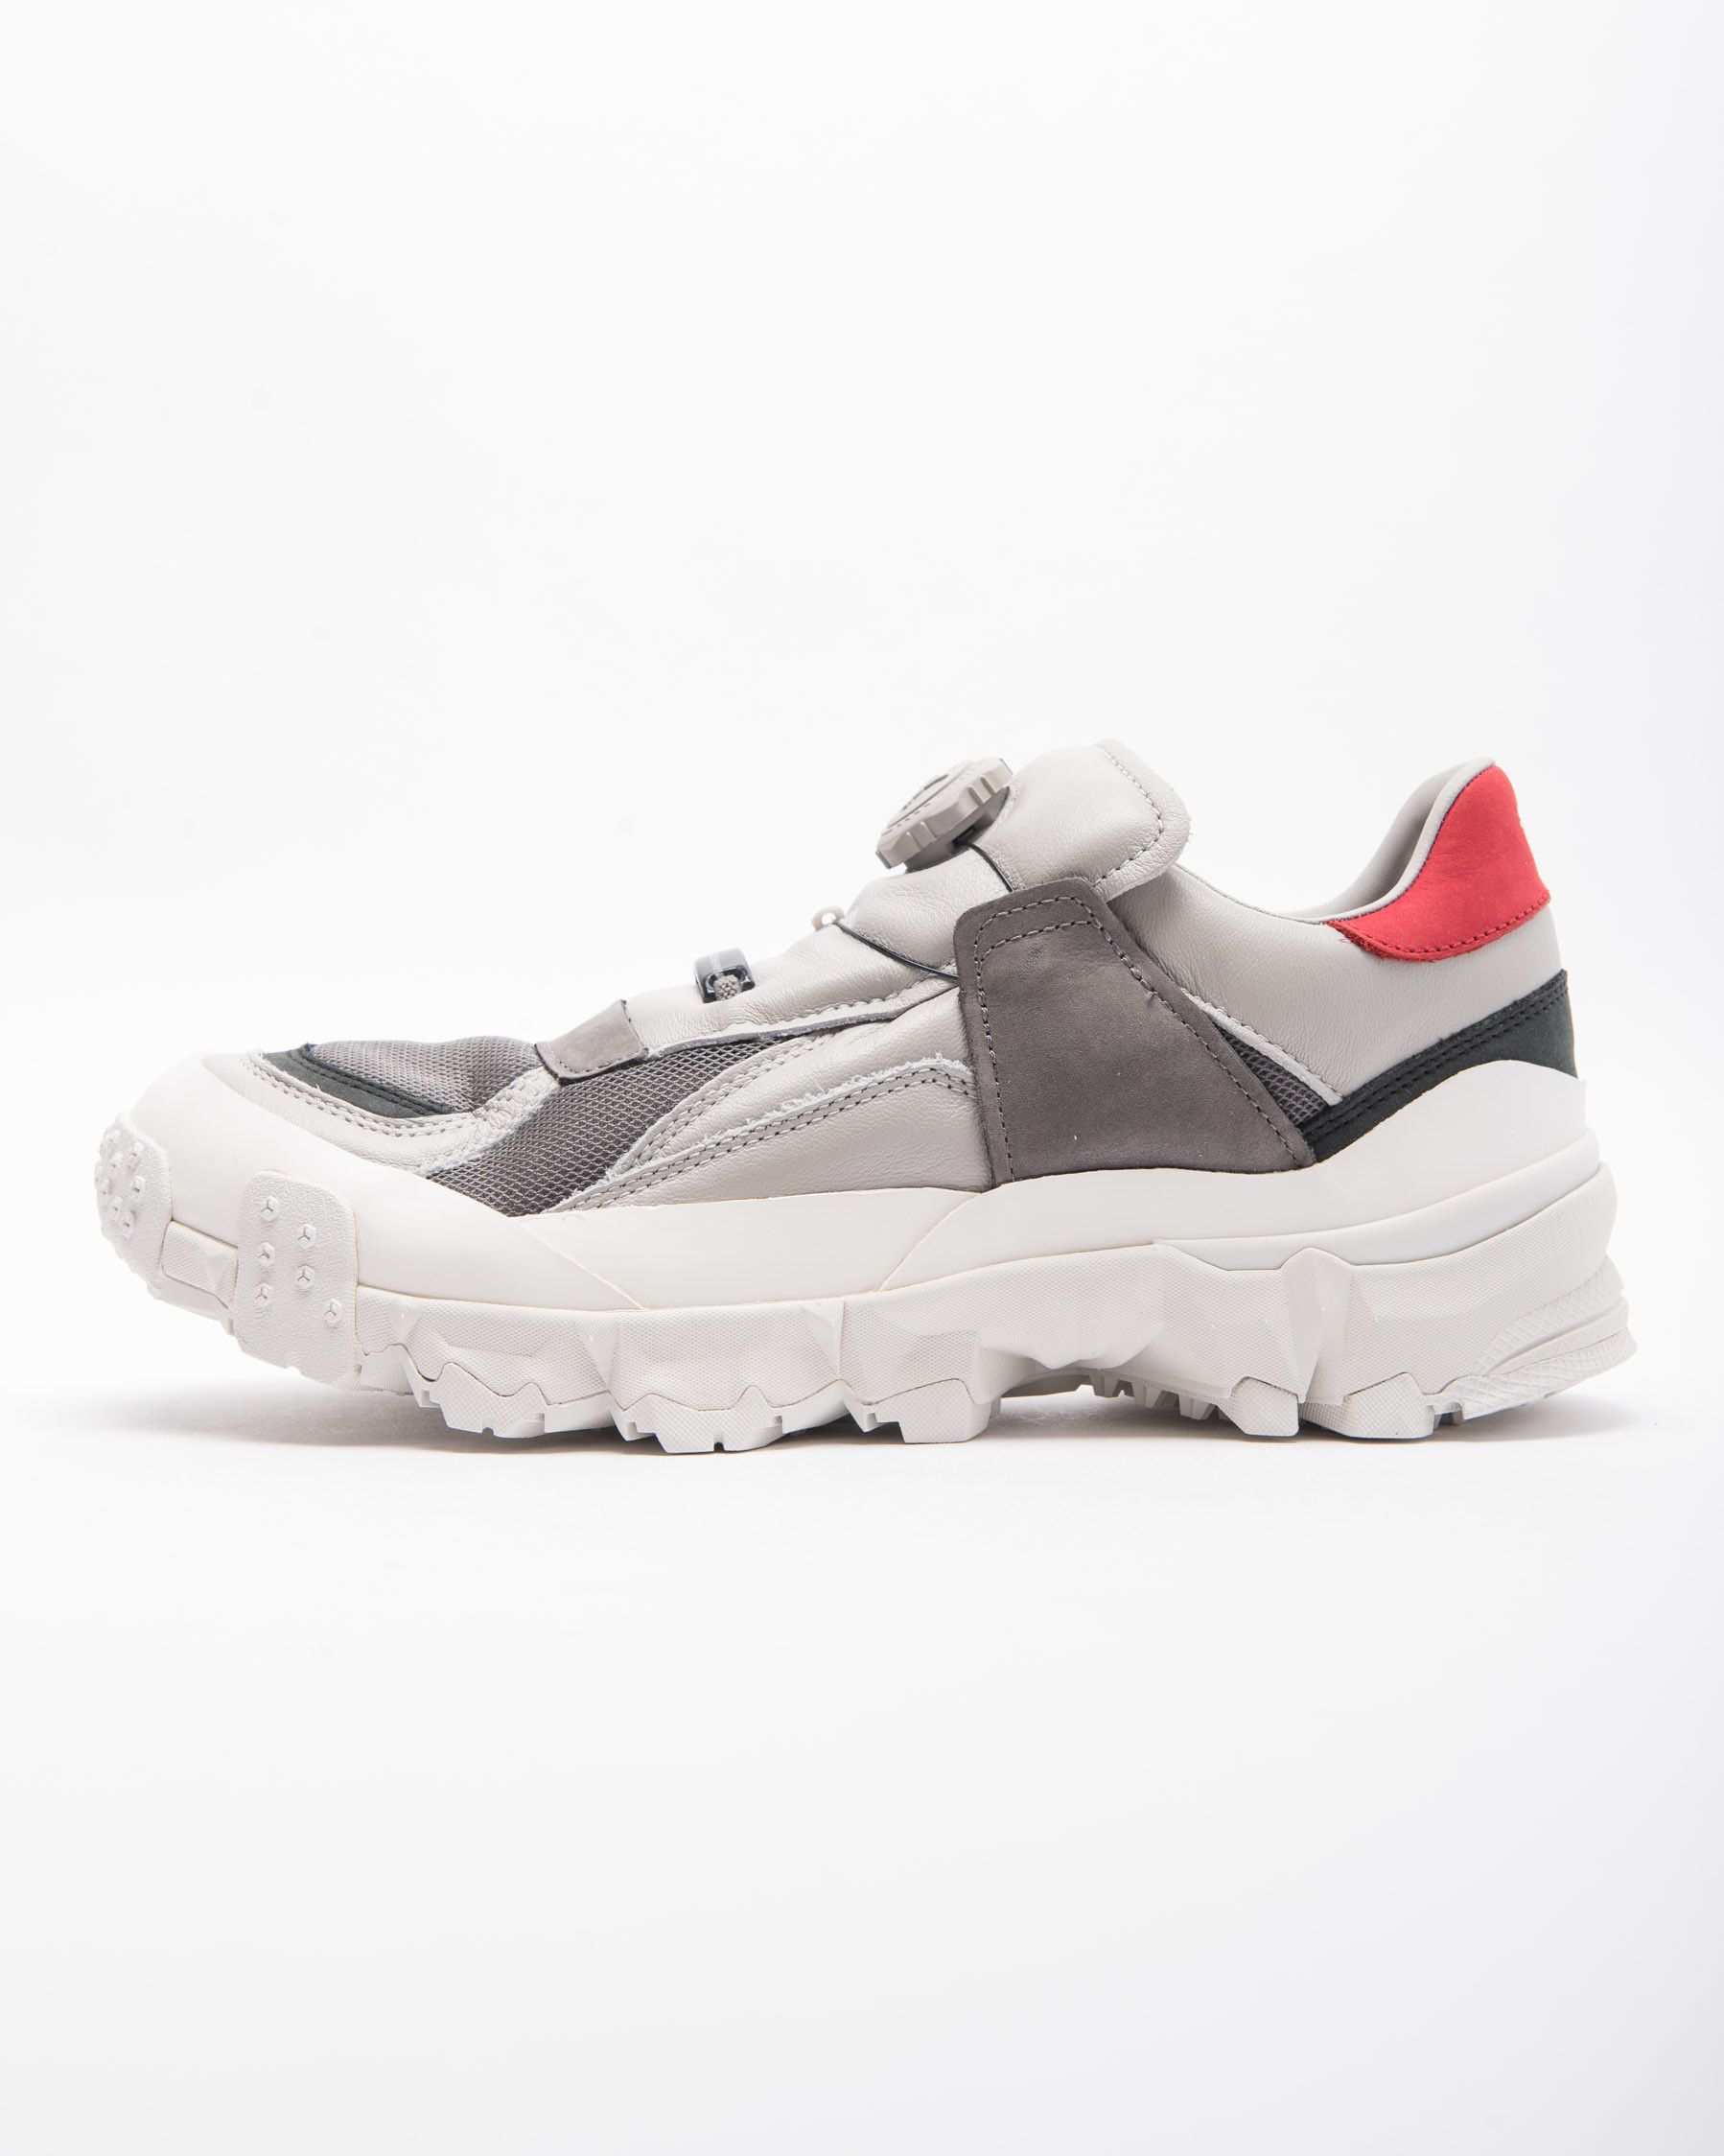 03af4e205eb Buy now Puma Trailfox Disc Han Kobenhavn - 367313-02 | FOOTWEAR in ...